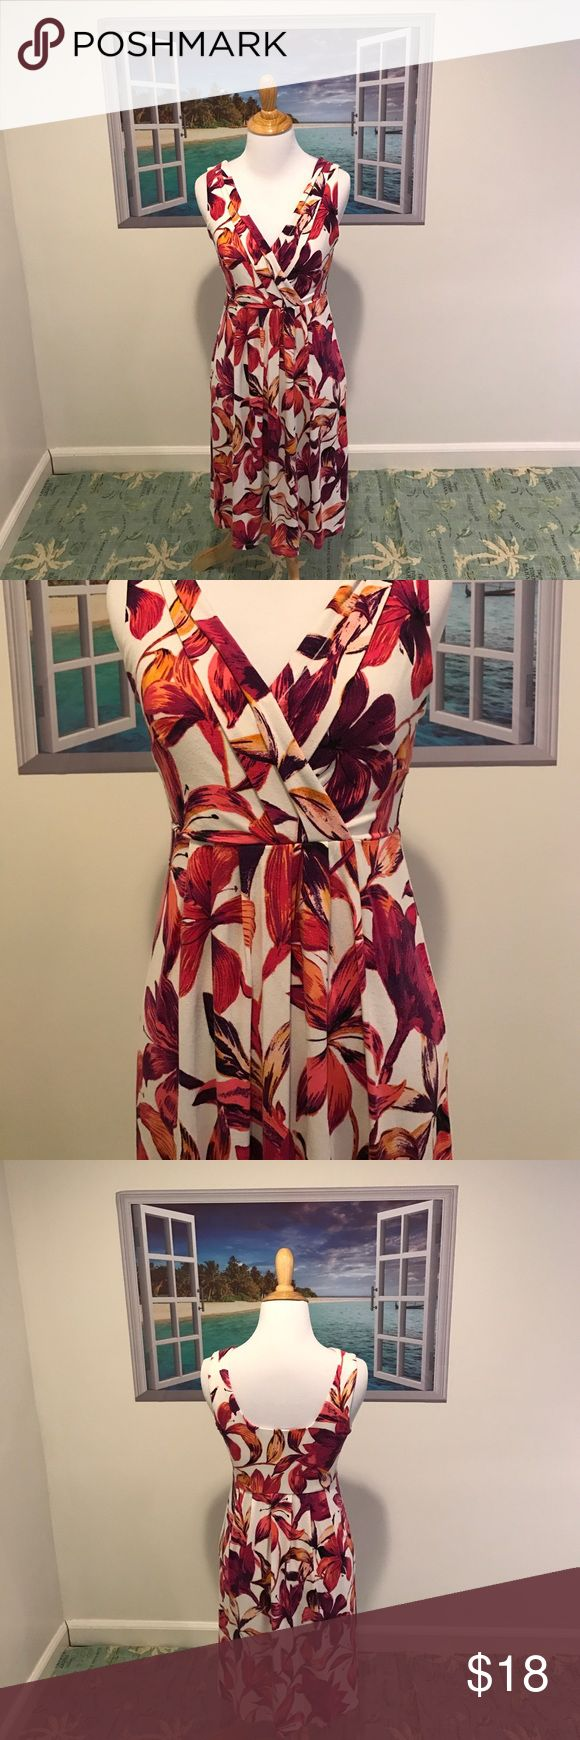 "Ann Taylor Tropical Dress Summer is coming! Let this Tropical Dress from Ann Taylor take u from a casual day to a night out, vacation etc! Dress it up or down! Size:XS. Used great condition. Bra friendly. Faux wrap front. Color is white with shades of pinks, purples, reds, black  & hints of like a burnt orange. Very soft! Approx 34"" length. Body 94% rayon 6% spandex. Lining 100% polyester. Machine wash. Dry flat. NO TRADES. Ann Taylor Dresses"